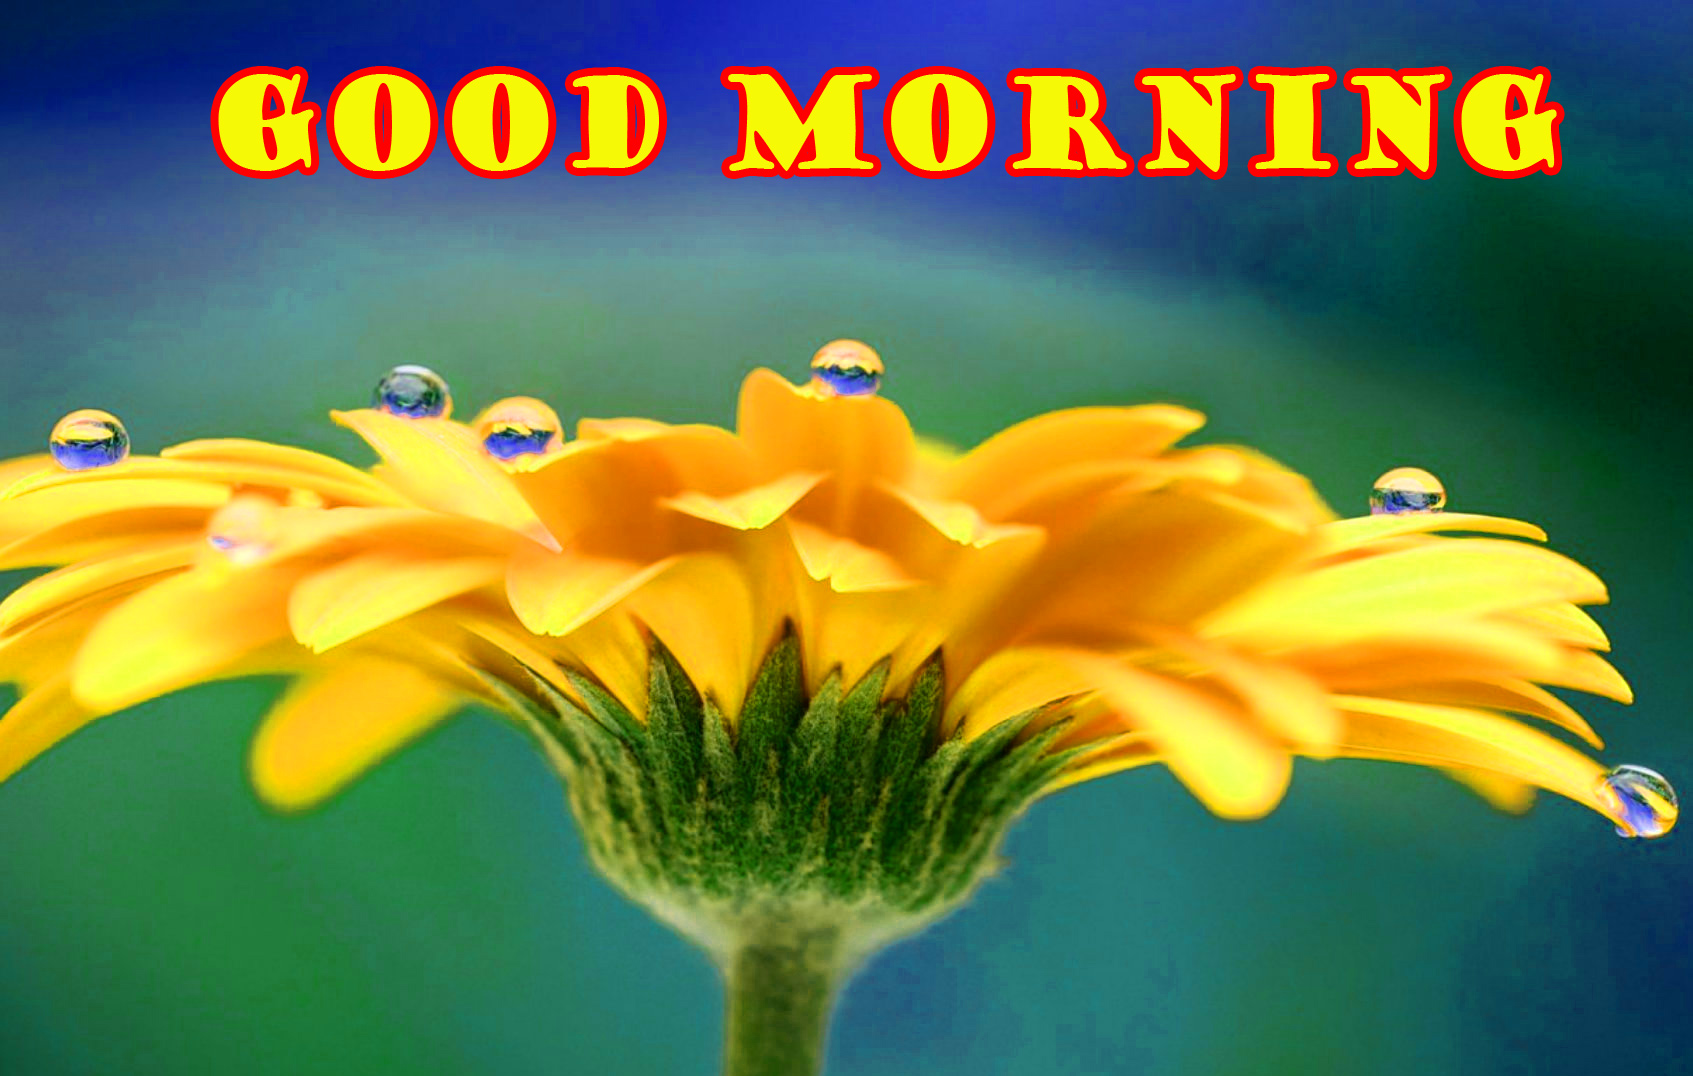 Special Wonderful Good Morning Wallpaper Pictures HD Download